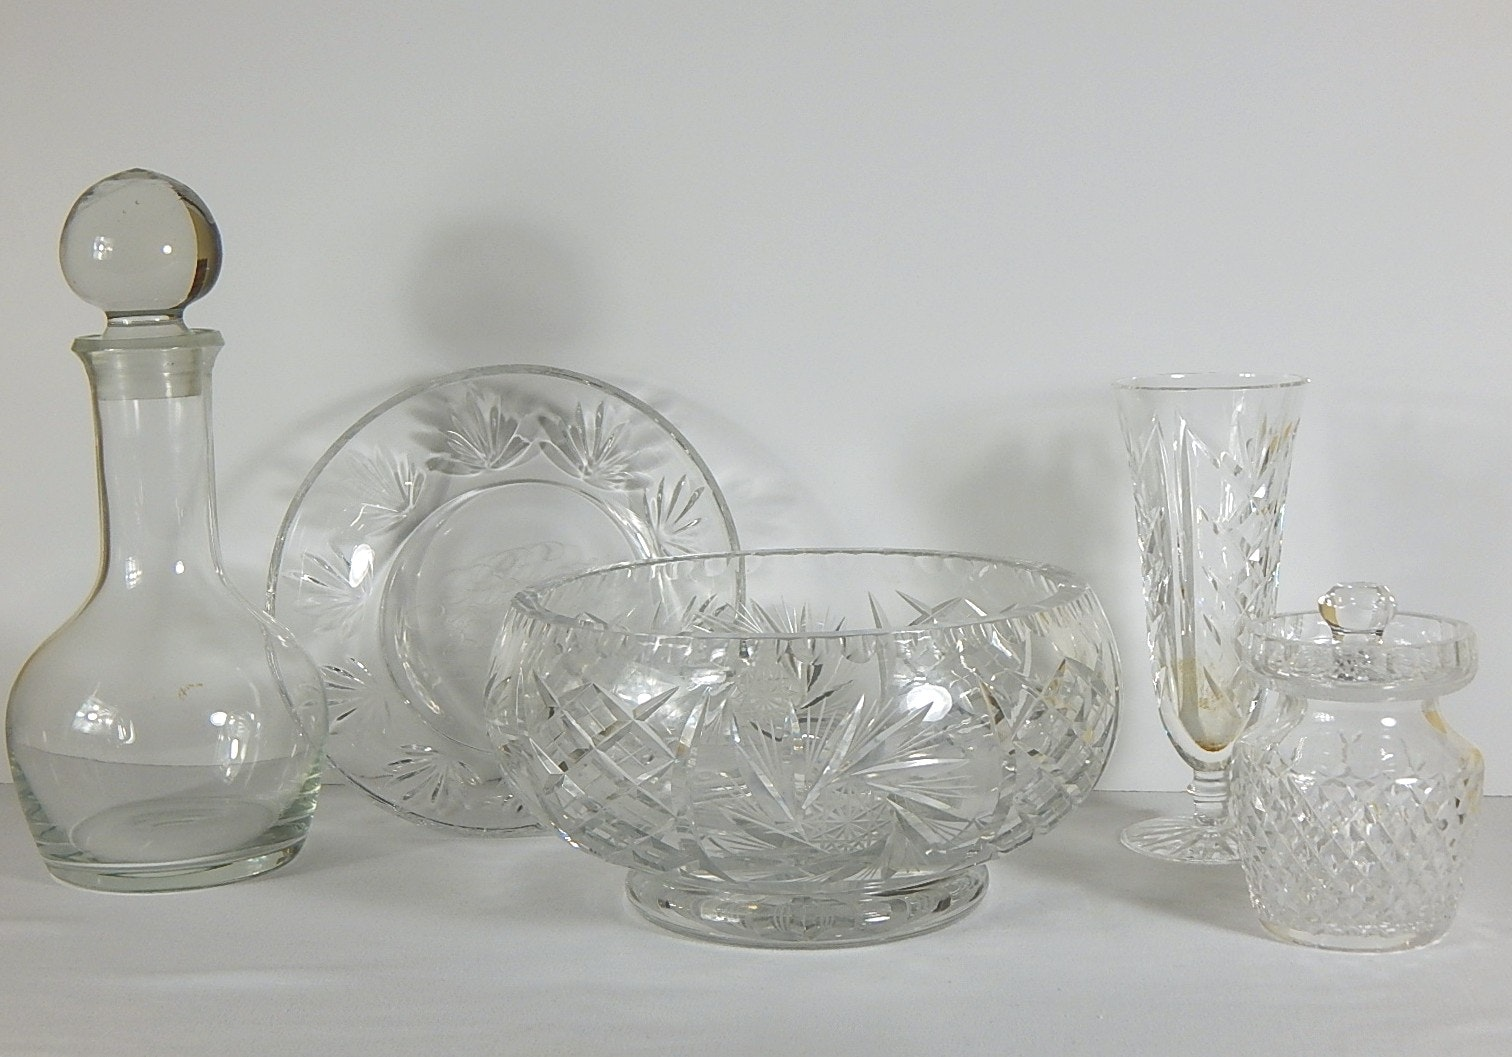 Decorative Crystal Lot with Waterford